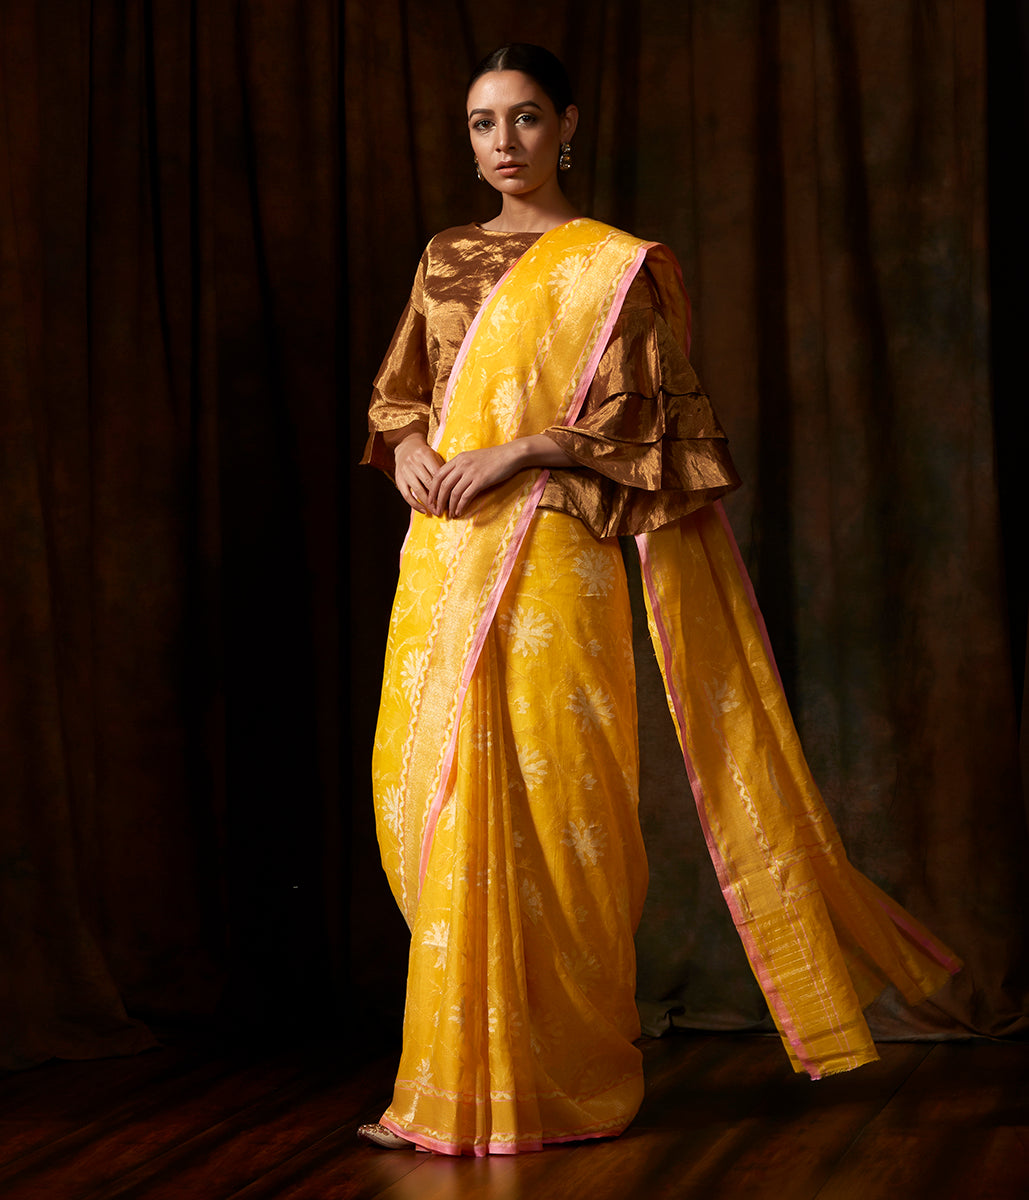 Handwoven cotton banarasi in yellow with all over floral jaal woven in jamdani weave